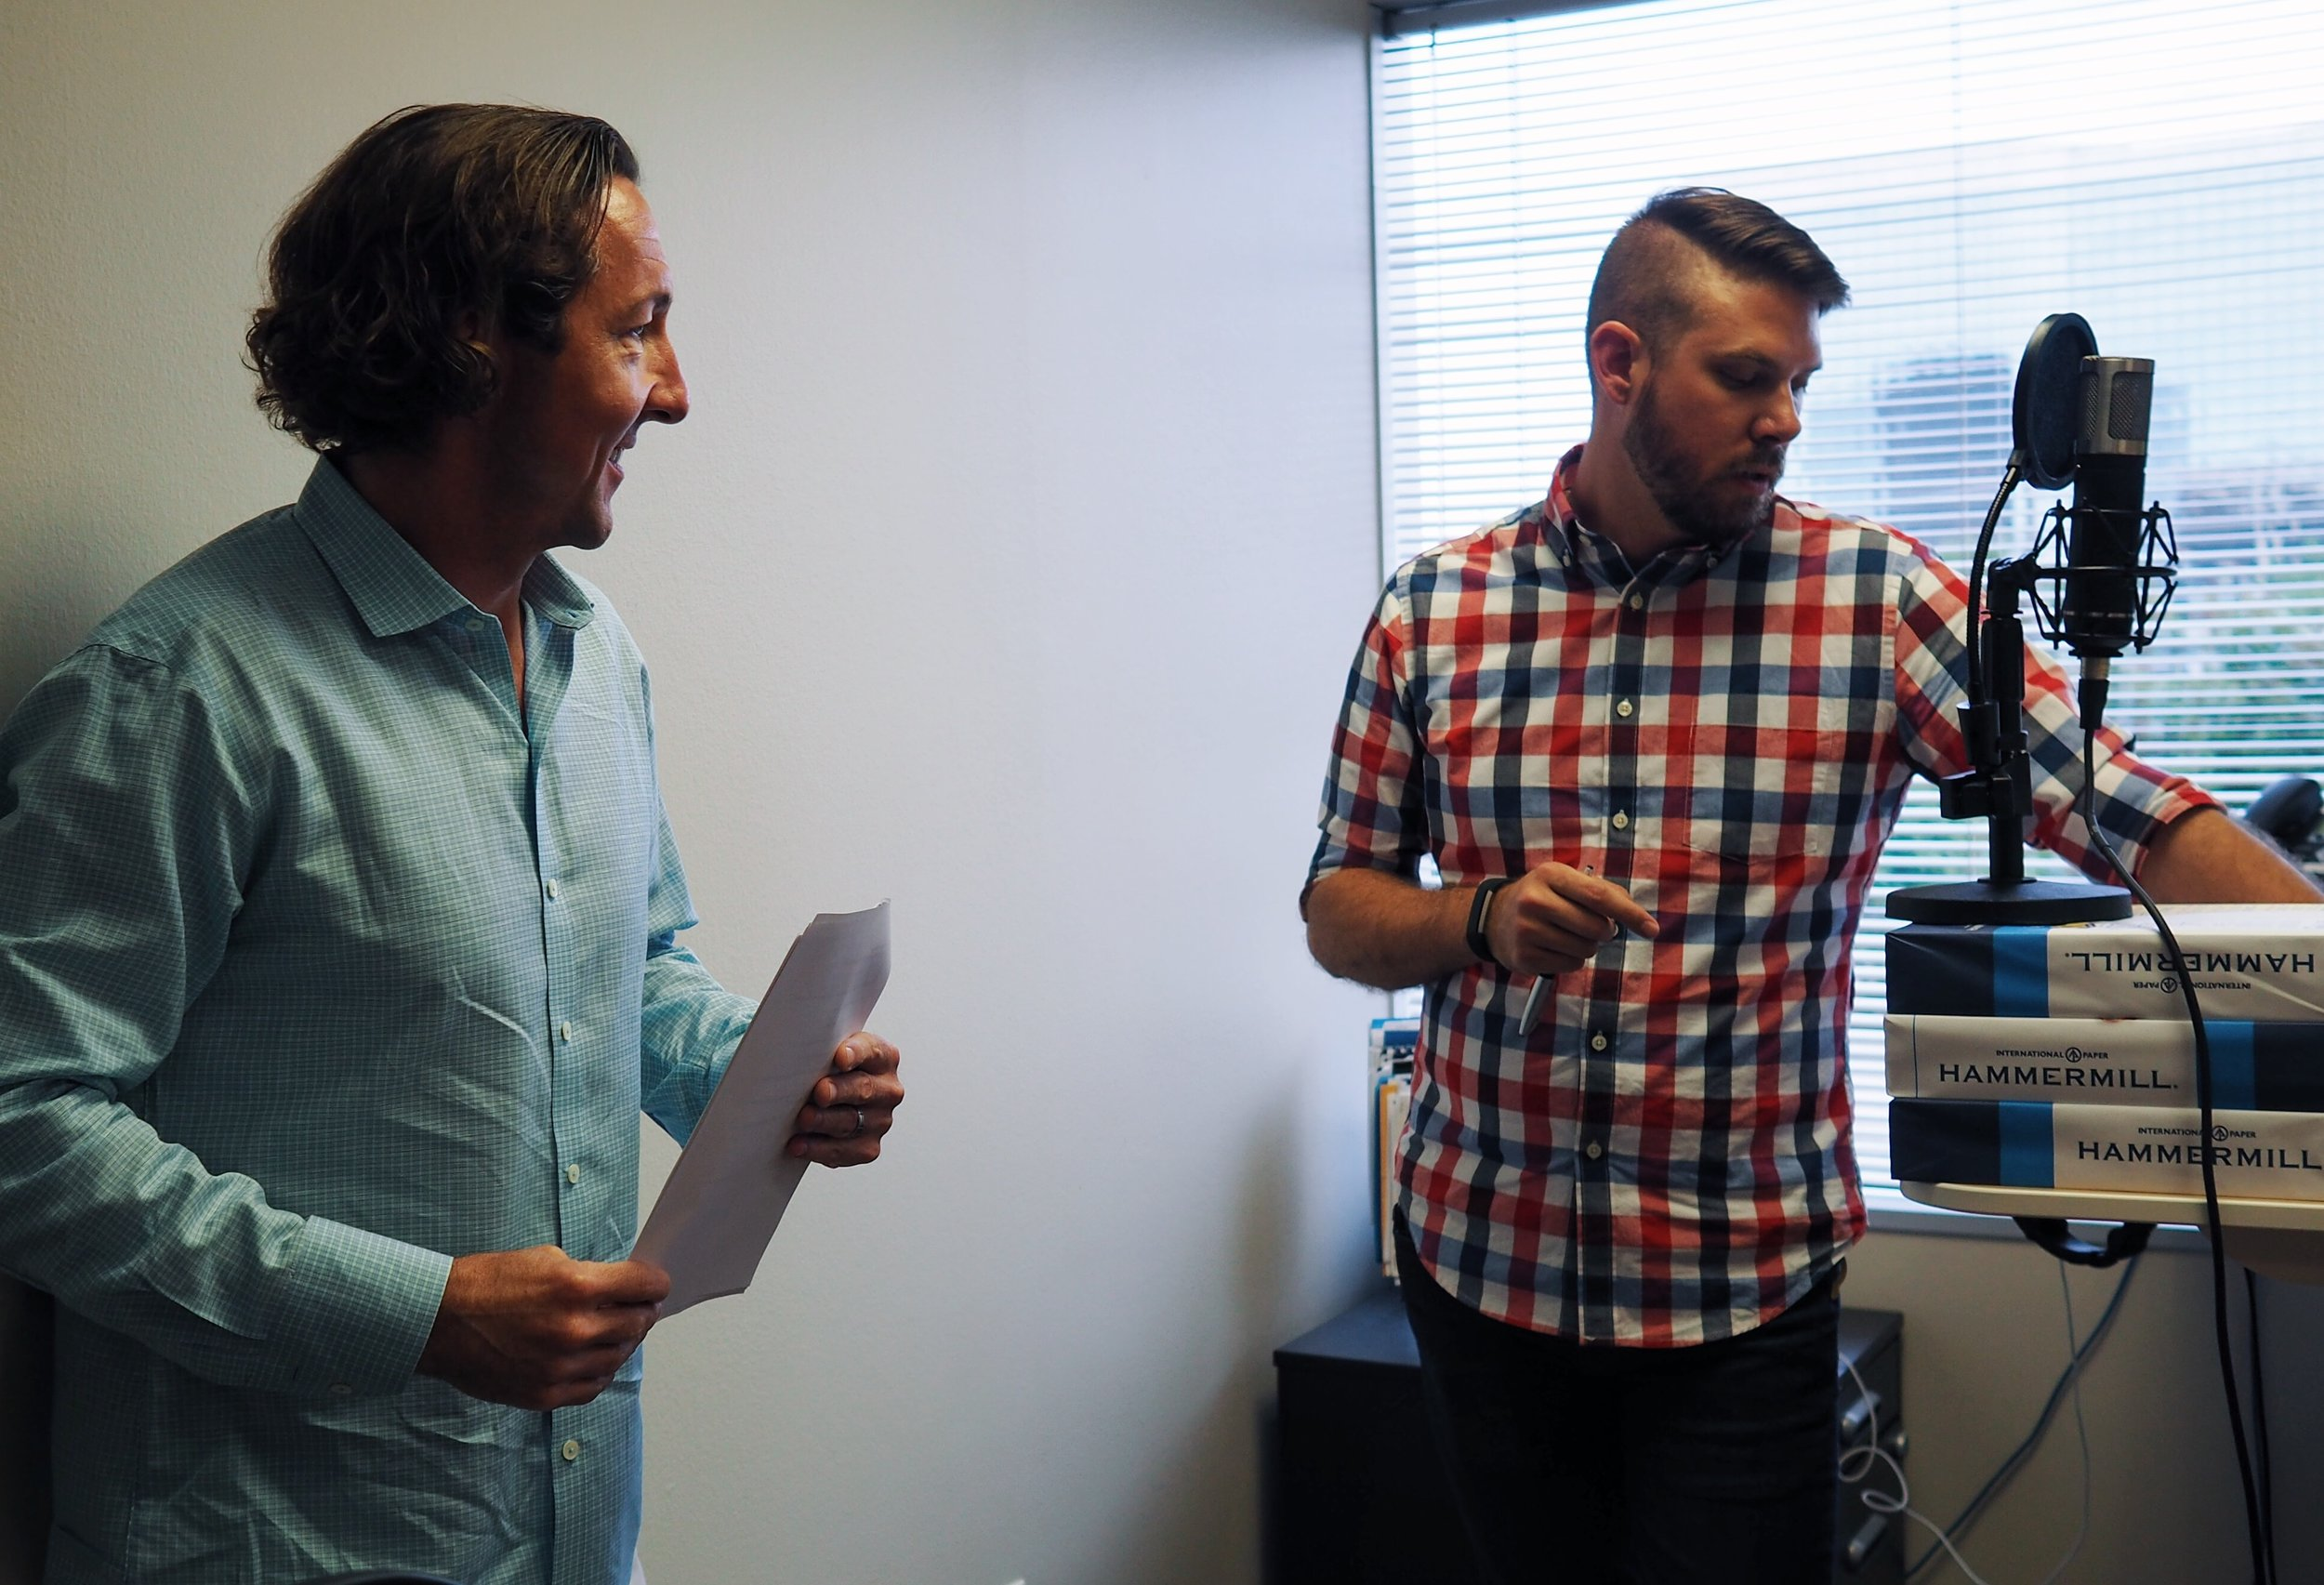 David Lancashire and Mike Townson prep for a projekt202 podcast recording.